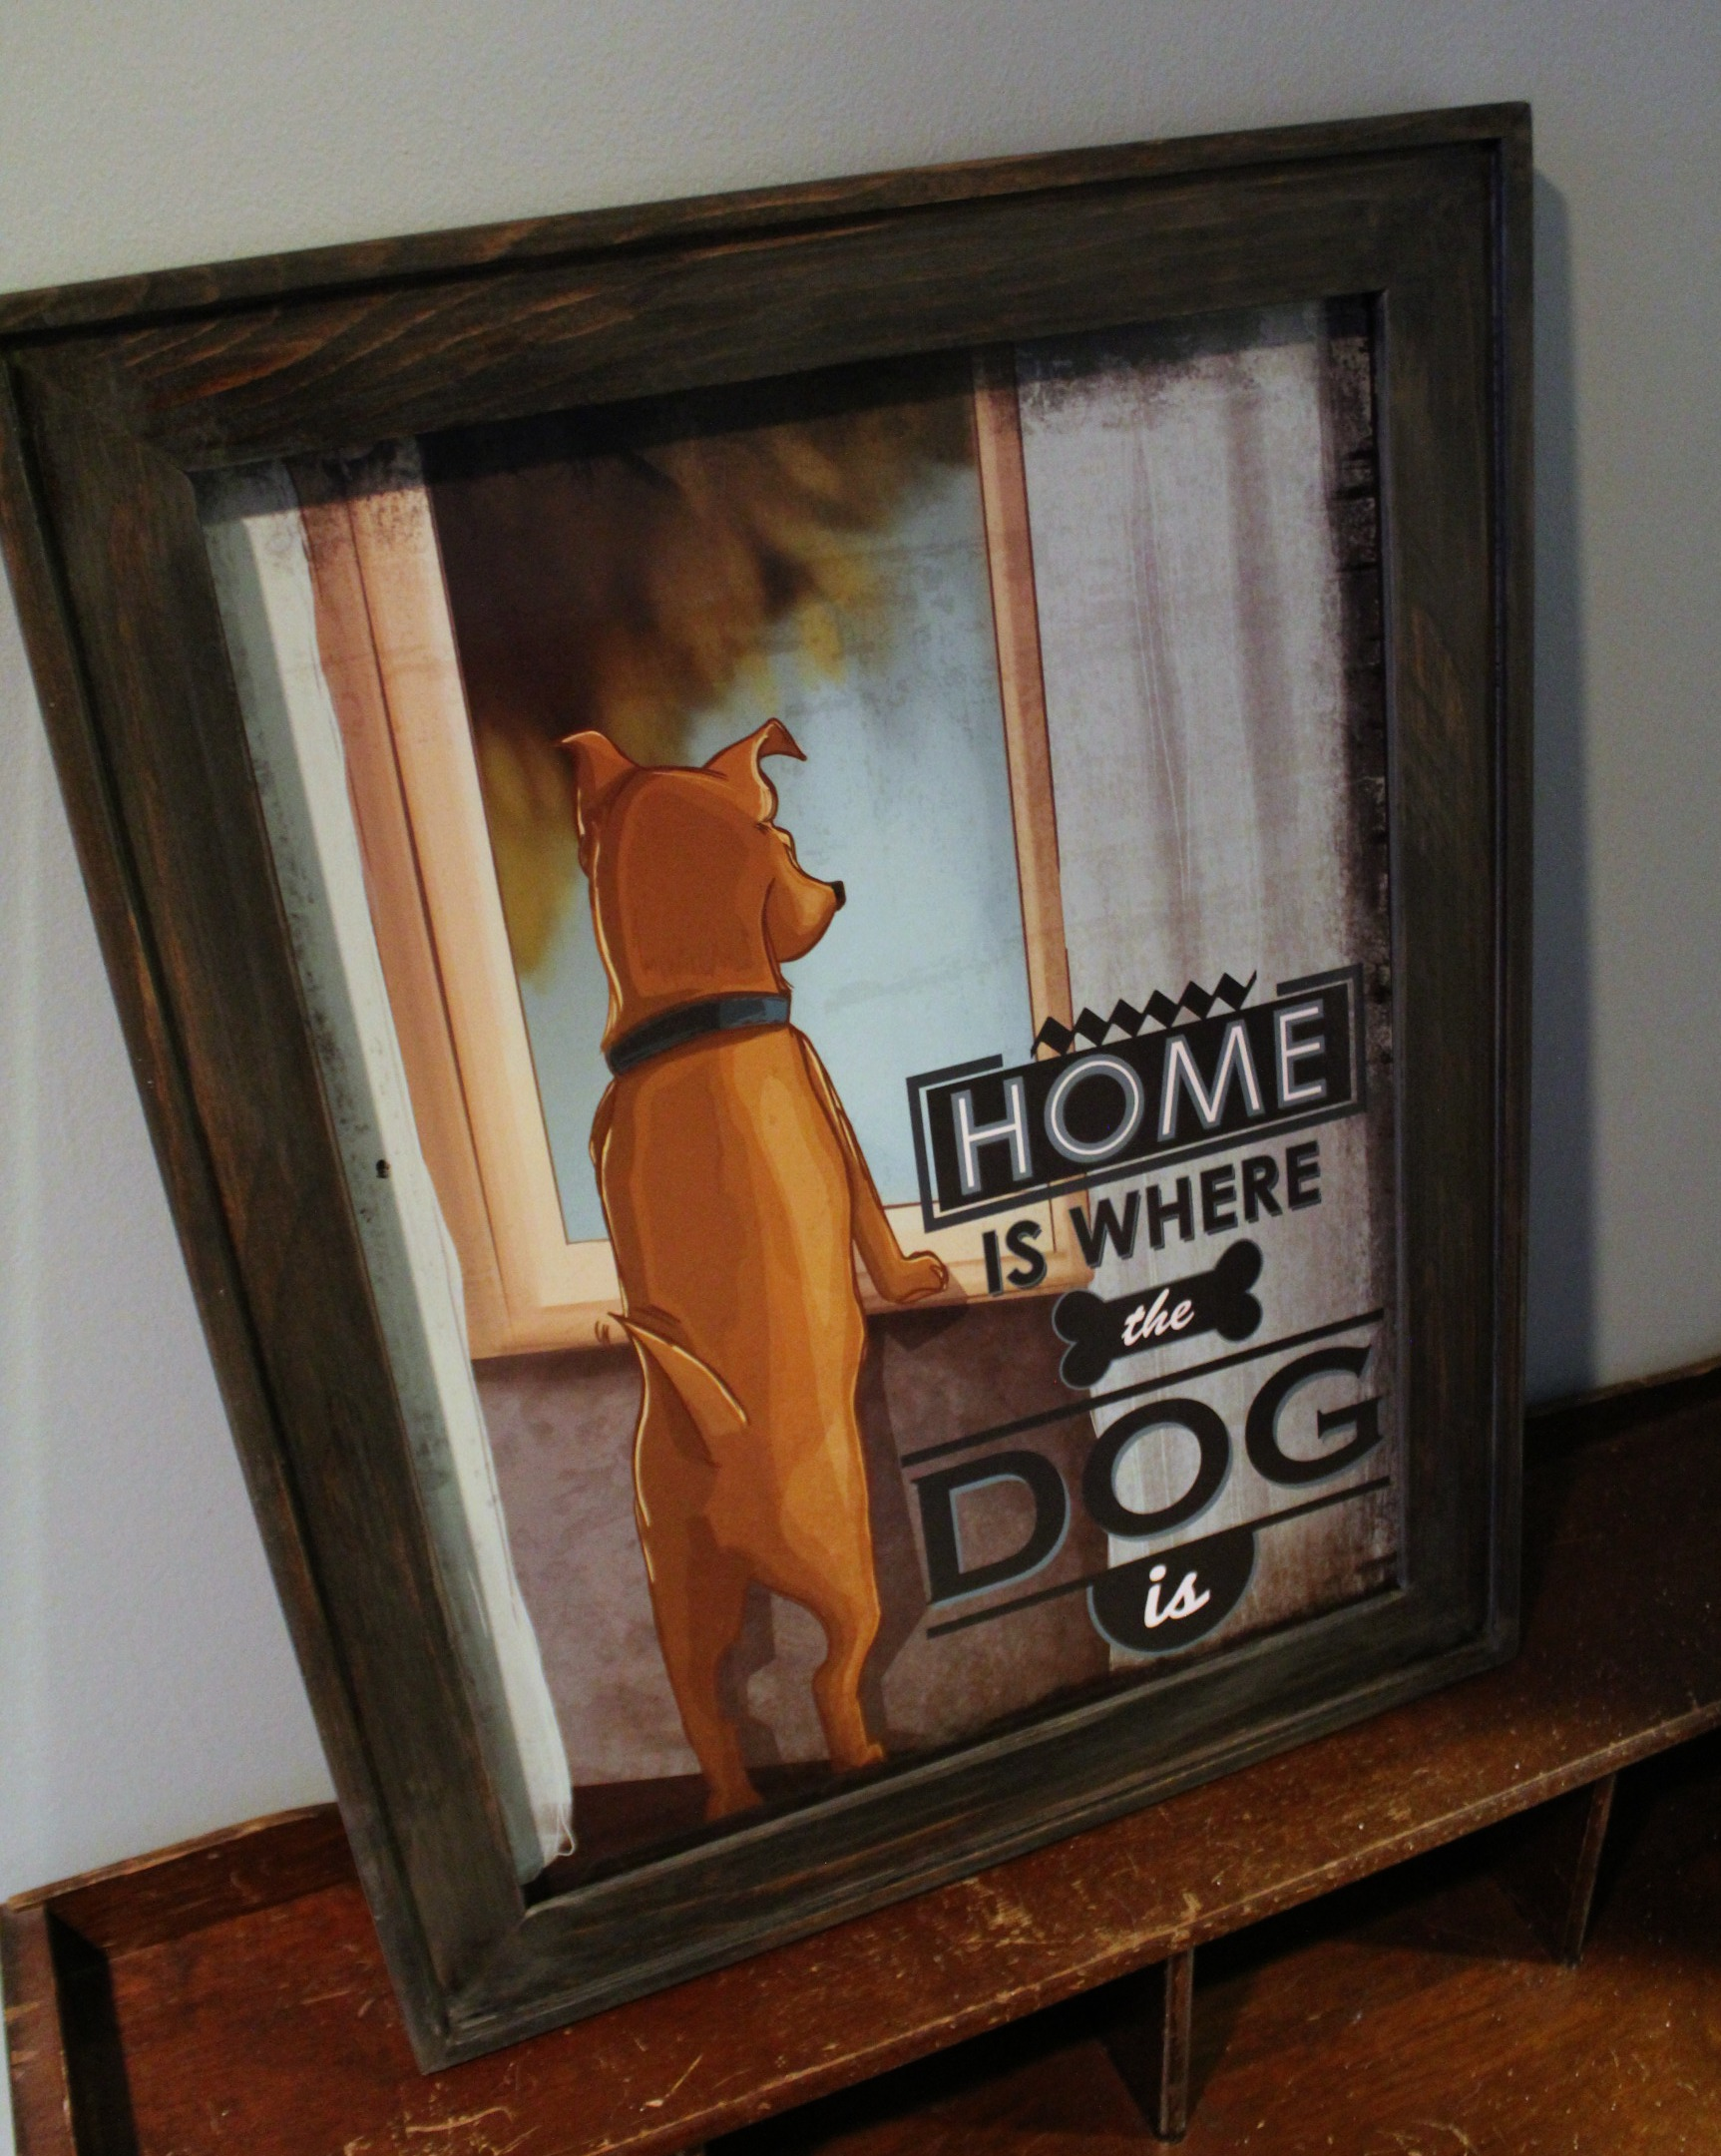 Home is where the dog is - framed